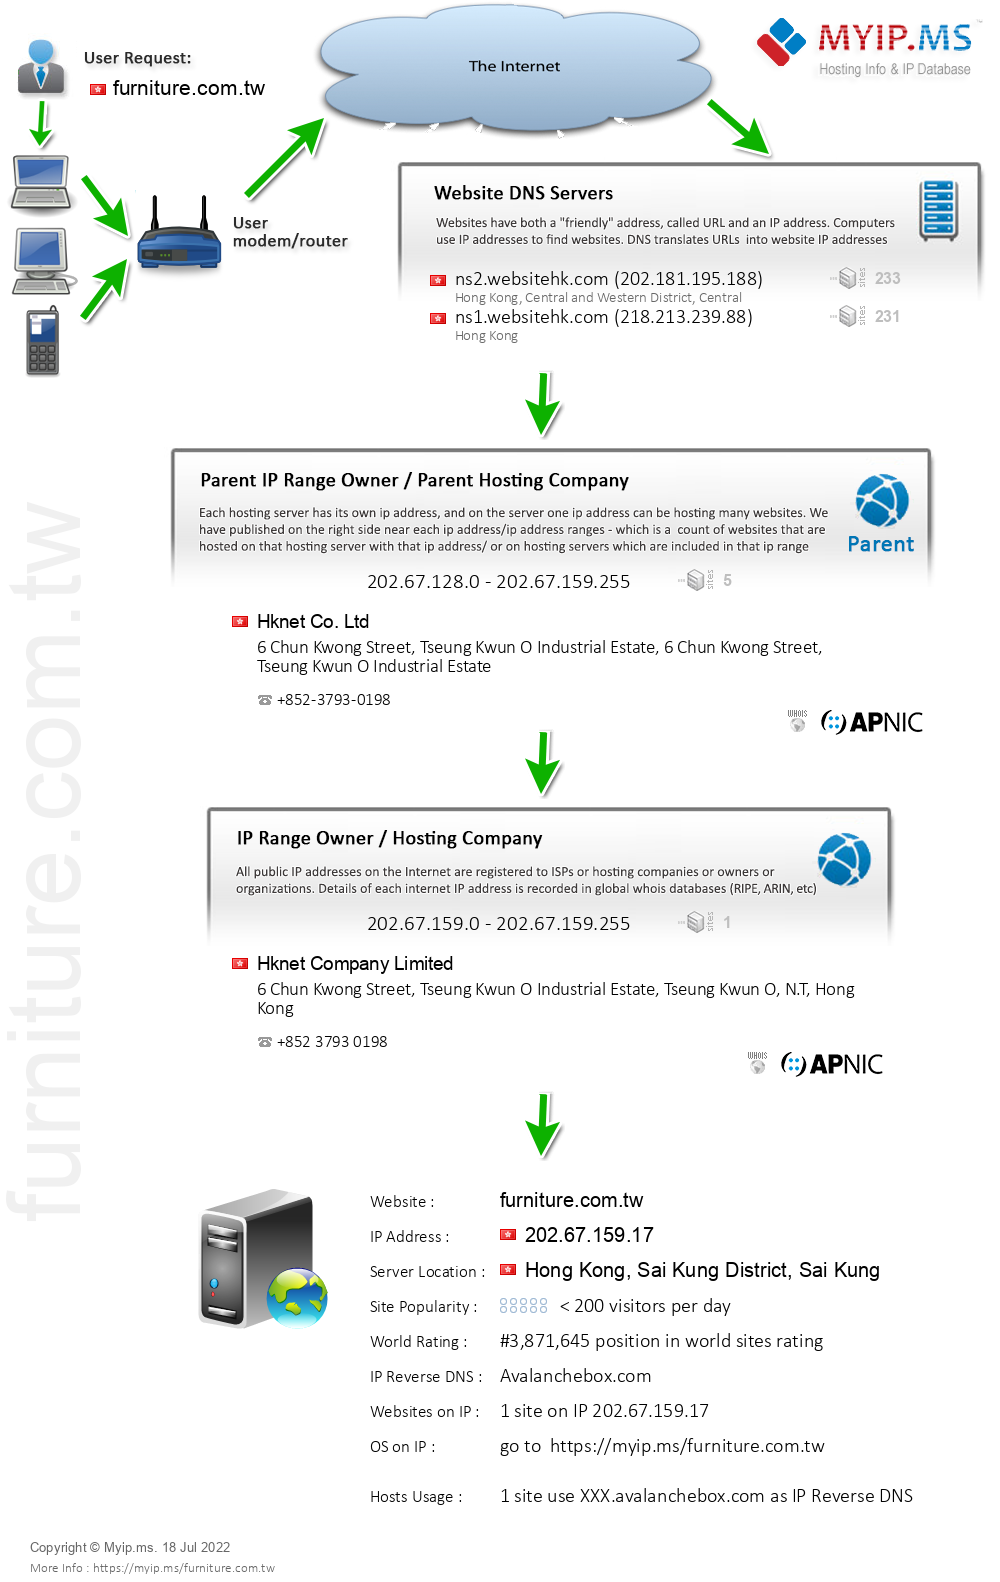 Furniture.com.tw - Website Hosting Visual IP Diagram